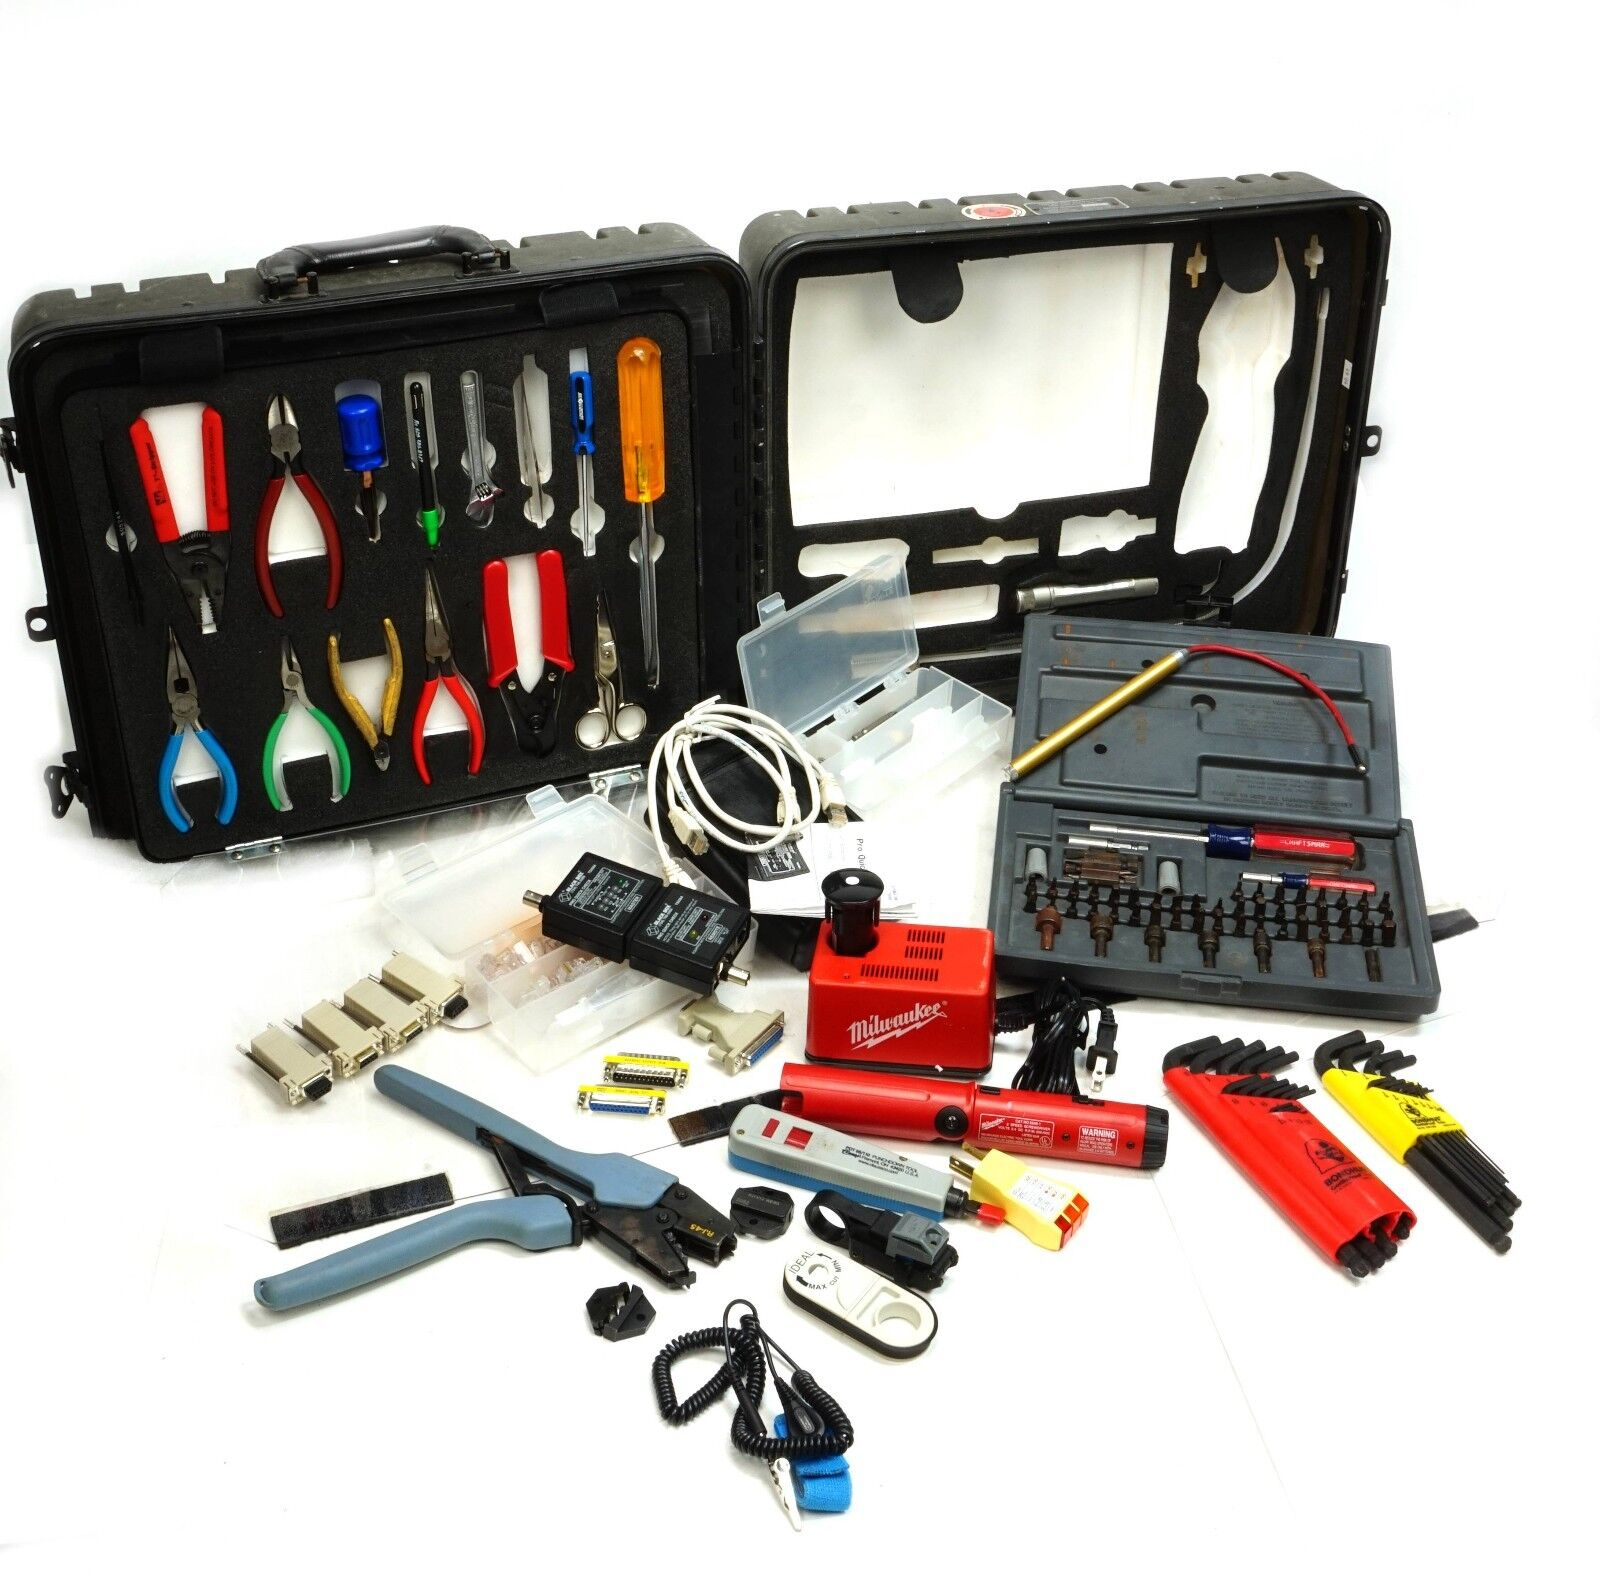 USMC Data Network & Coaxial Tool Kit, Milwaukee Xcelite, Compare Greenlee PA901039